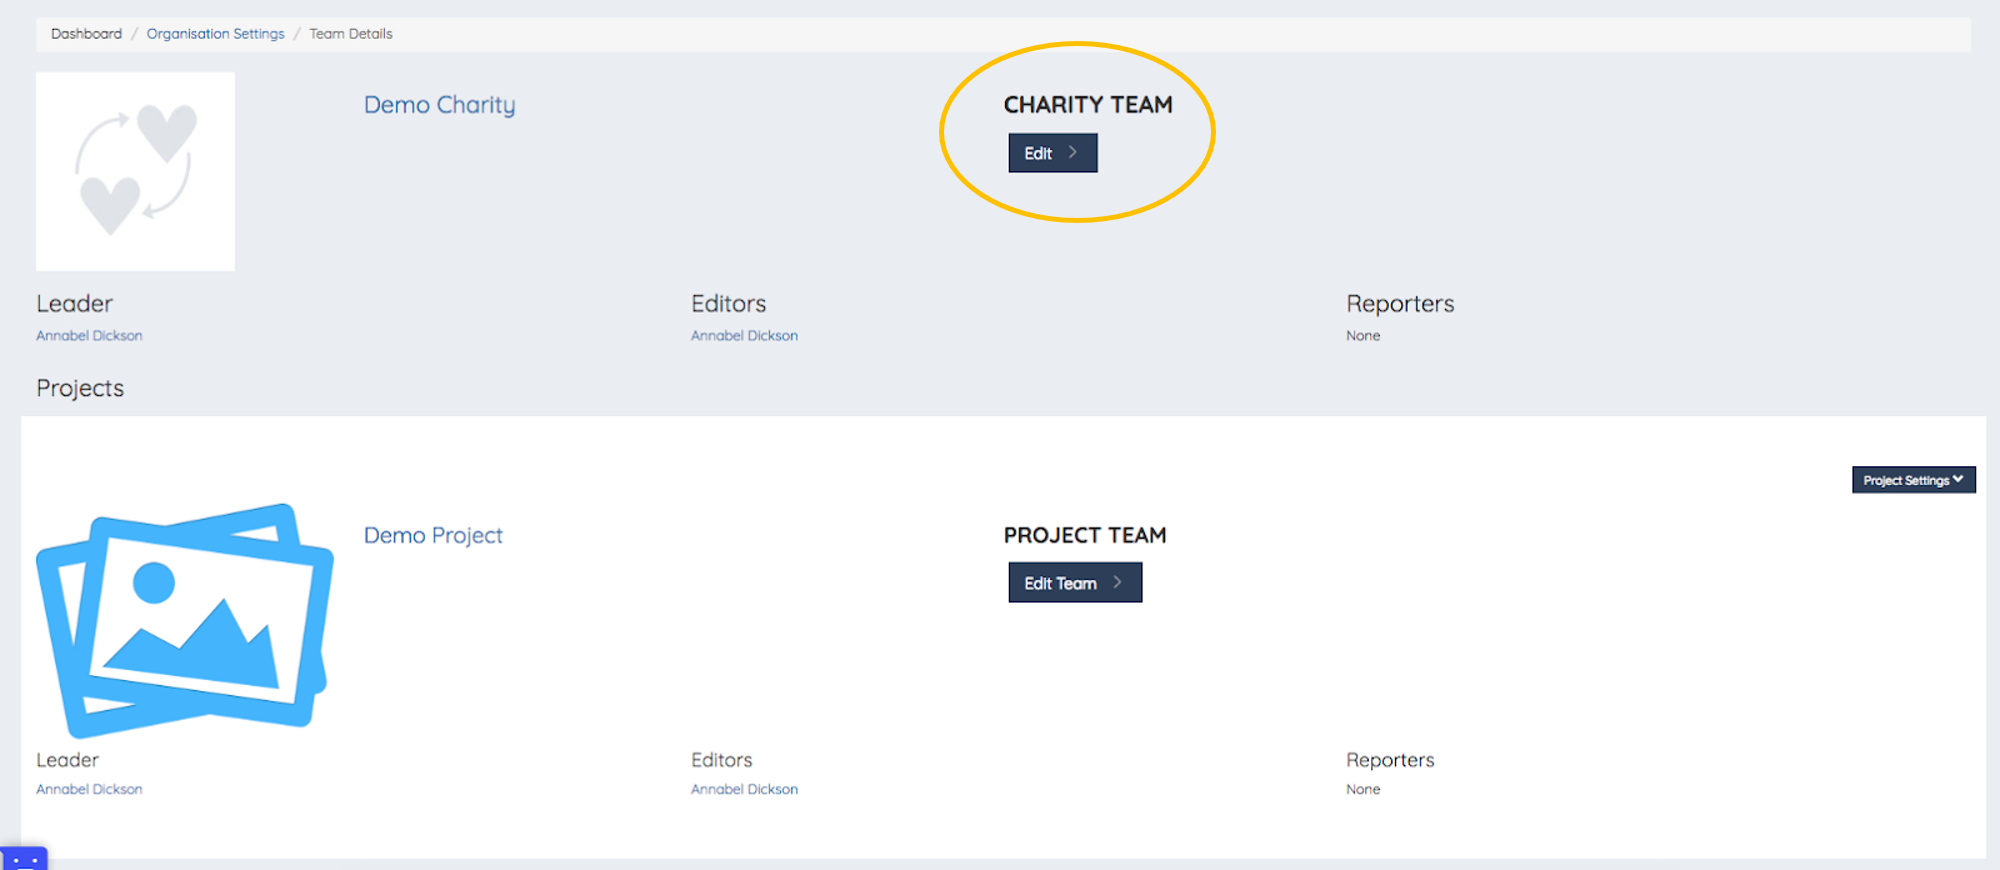 - 2. Here you can see your Organisation's team members, but also the team of a specific project3. To add a new colleague, click on Edit under 'Charity Team'Nb: the steps for adding team members at an Organisation level and project level are the same. For now we'll look at Organisation-level